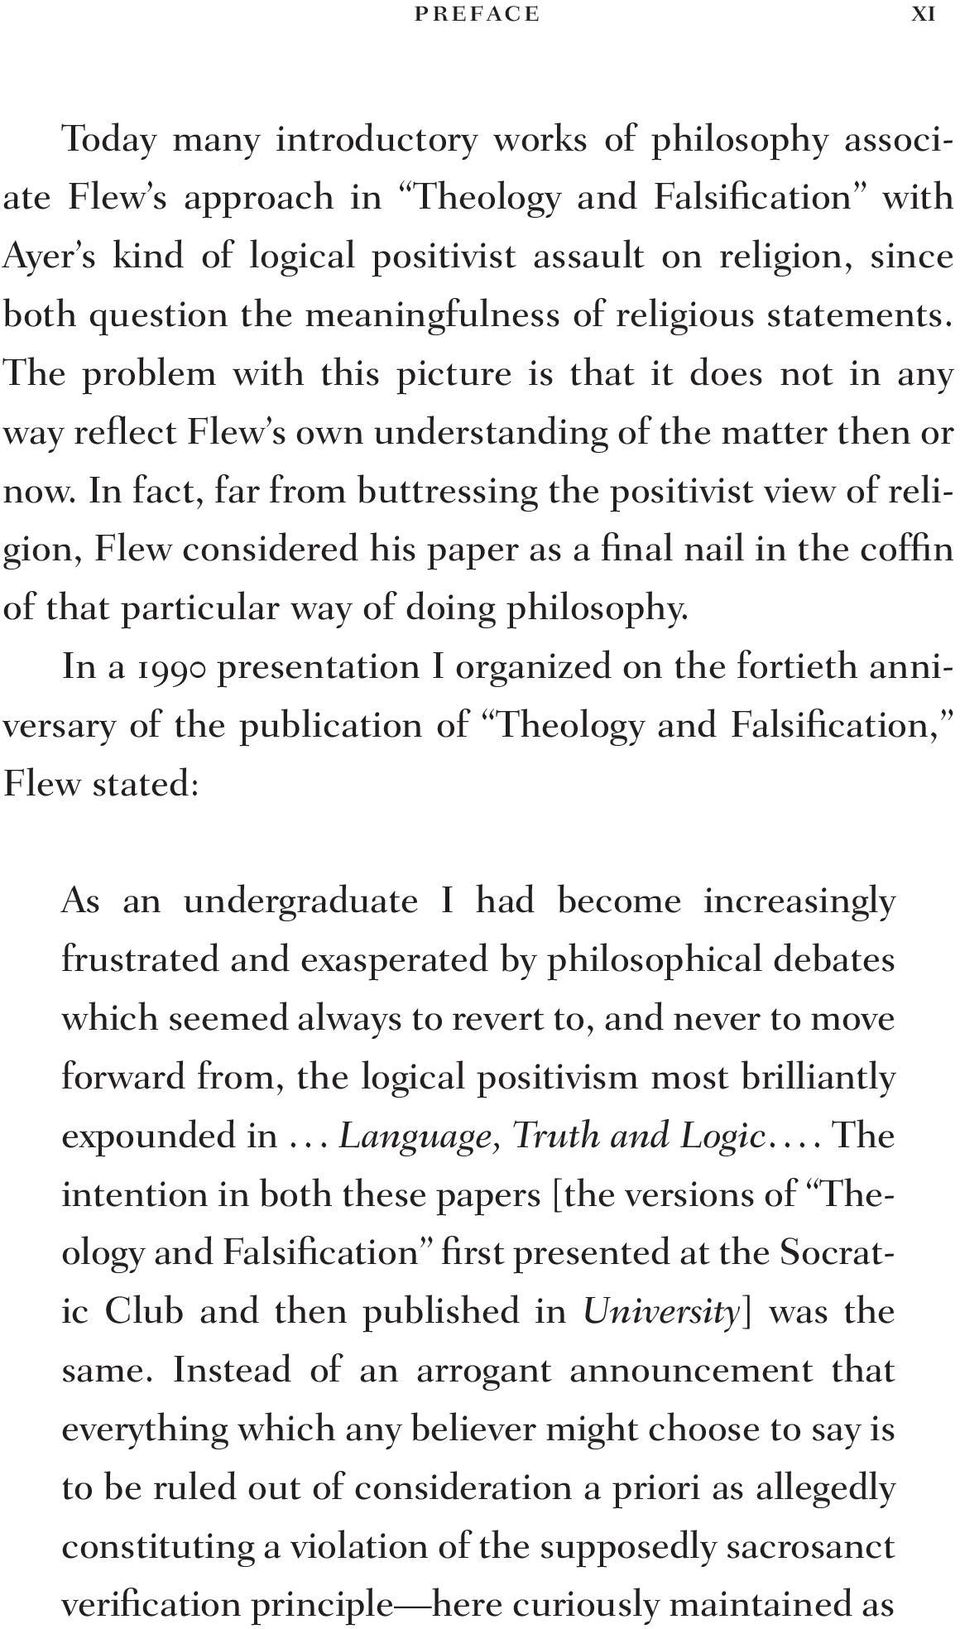 In fact, far from buttressing the positivist view of religion, Flew considered his paper as a final nail in the coffin of that particular way of doing philosophy.